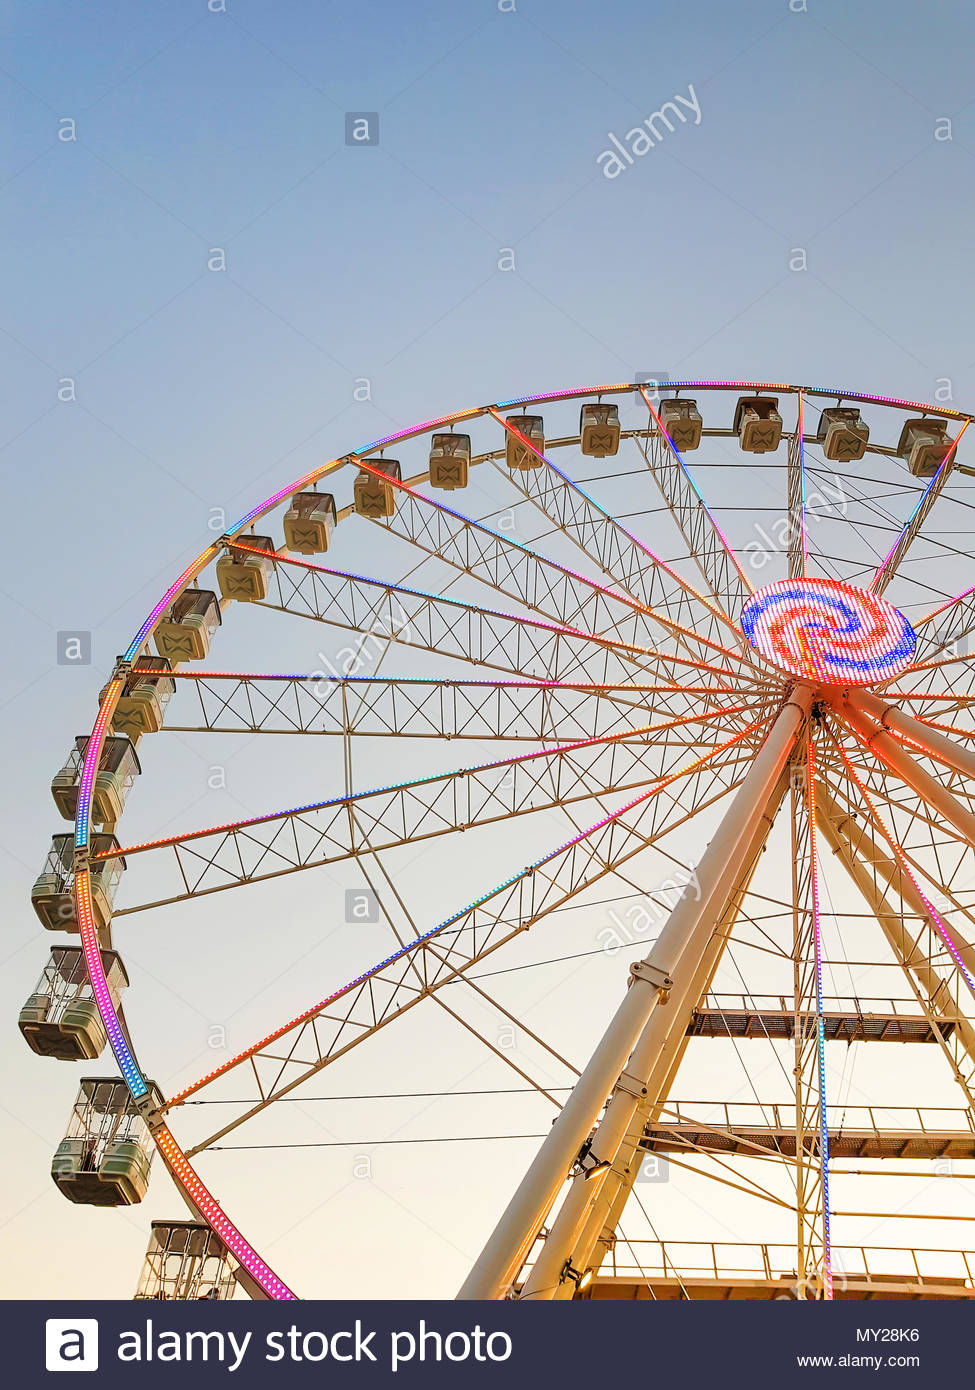 Part of ferris wheel against a blue sky background with colorful 975x1390